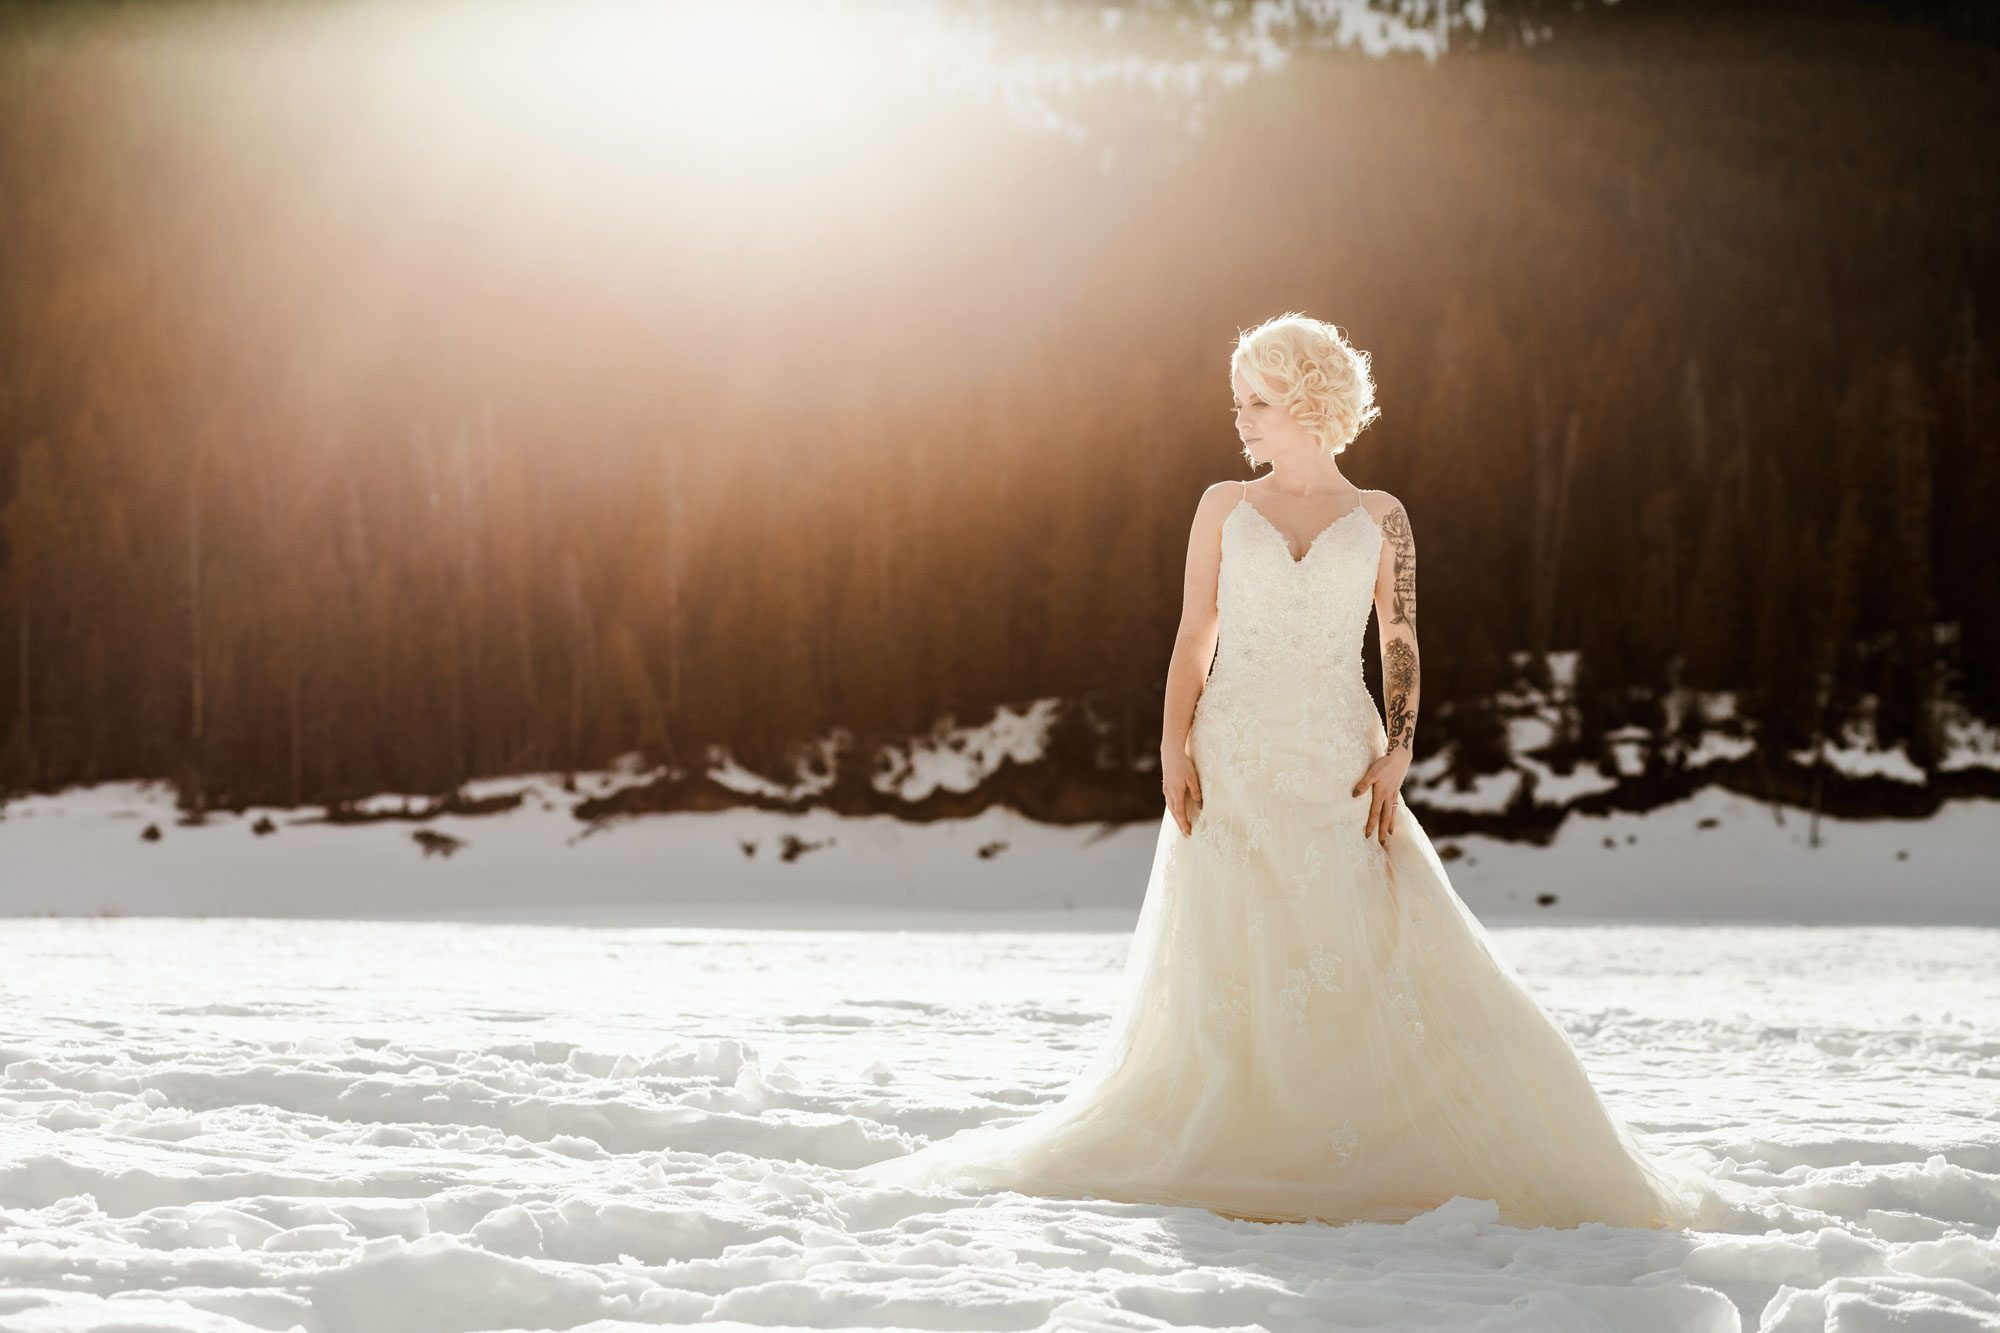 Bride - A Winter Wedding Shoot in Montana